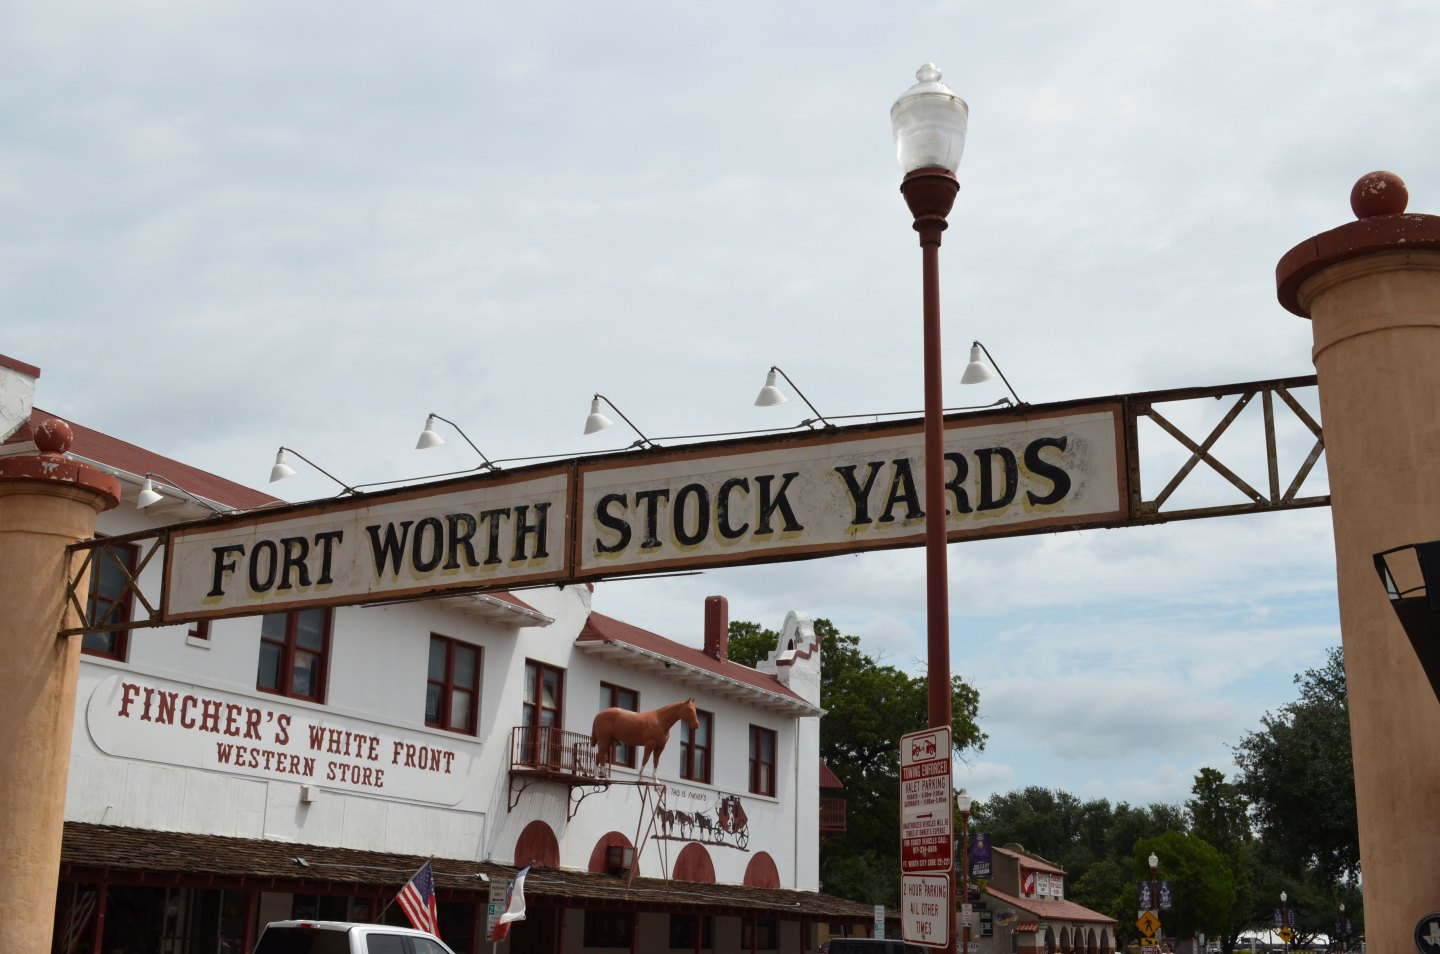 American coast to coast Fort Worth Stockyards